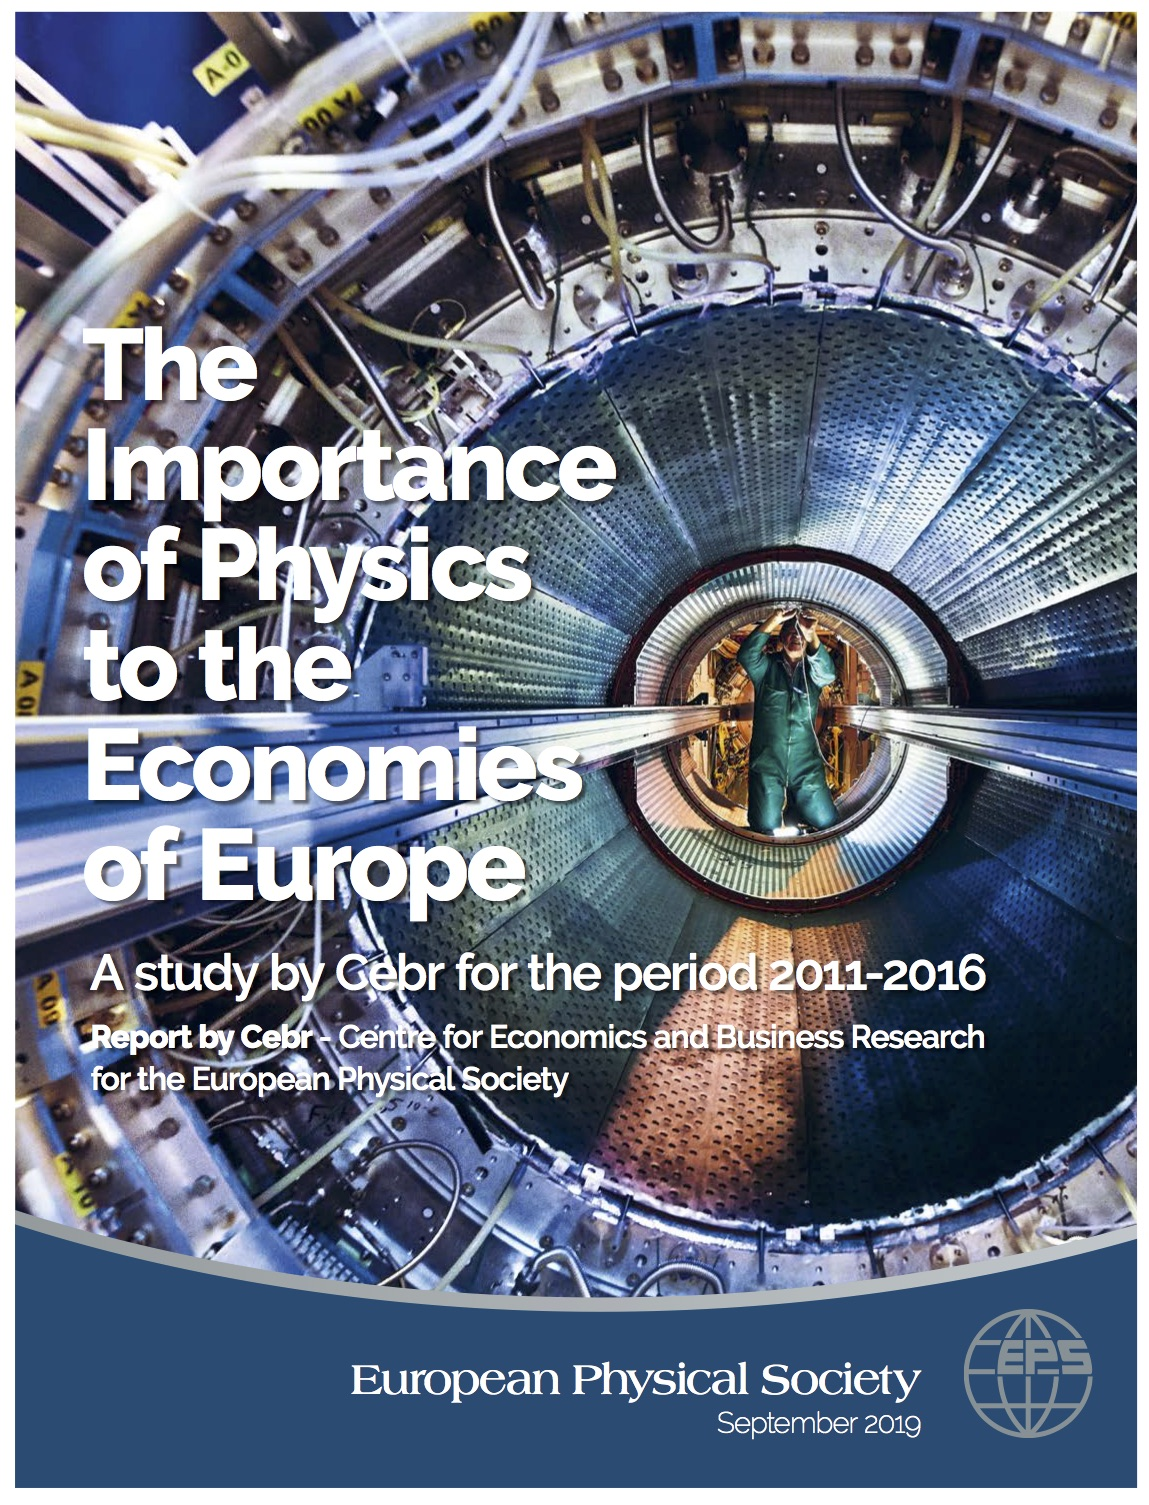 EPS Report on Physics and the economy